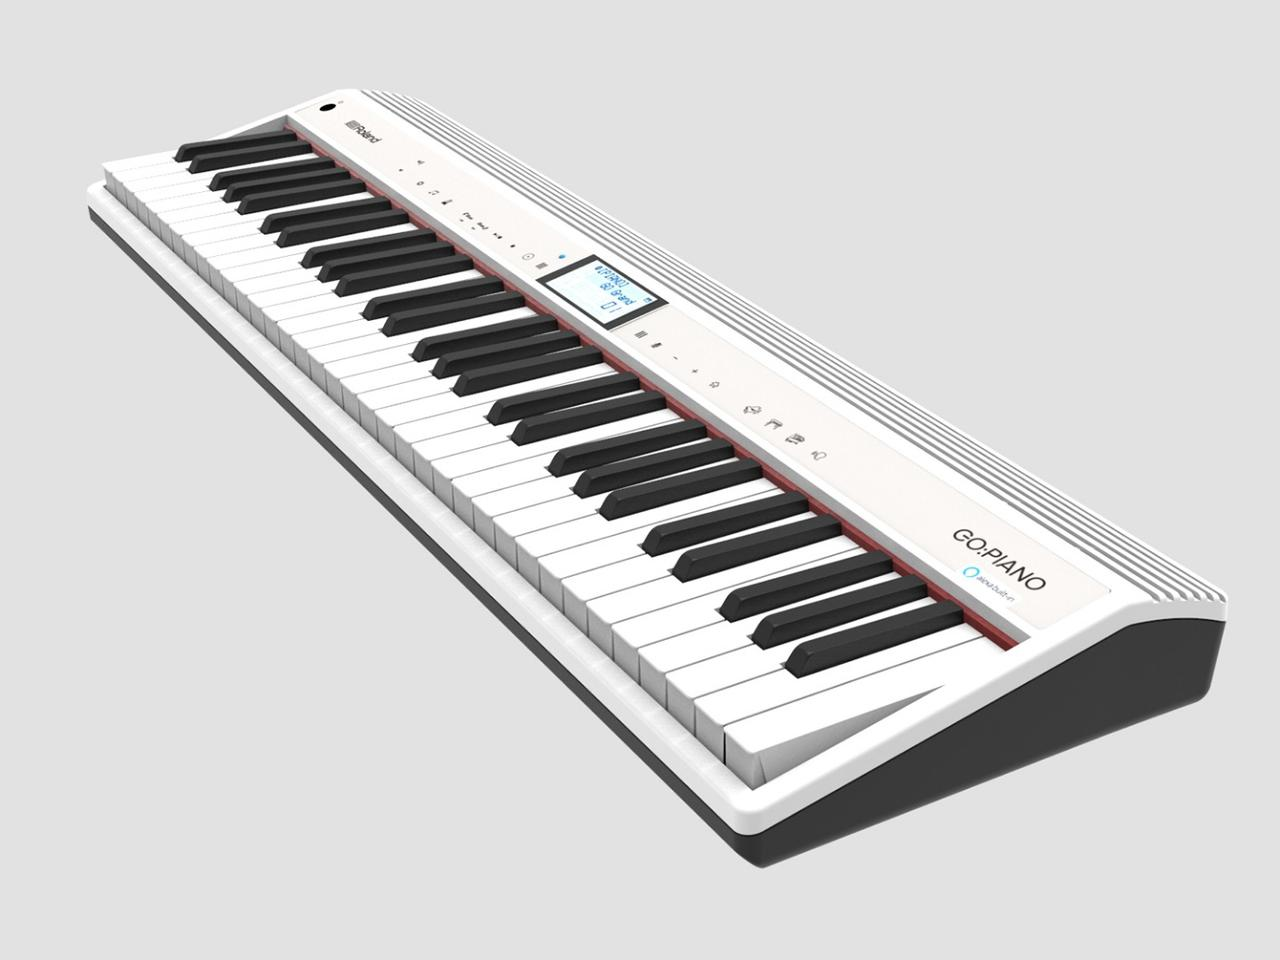 Roland has debuted its new Alexa Skill in a special version of its Go:Piano